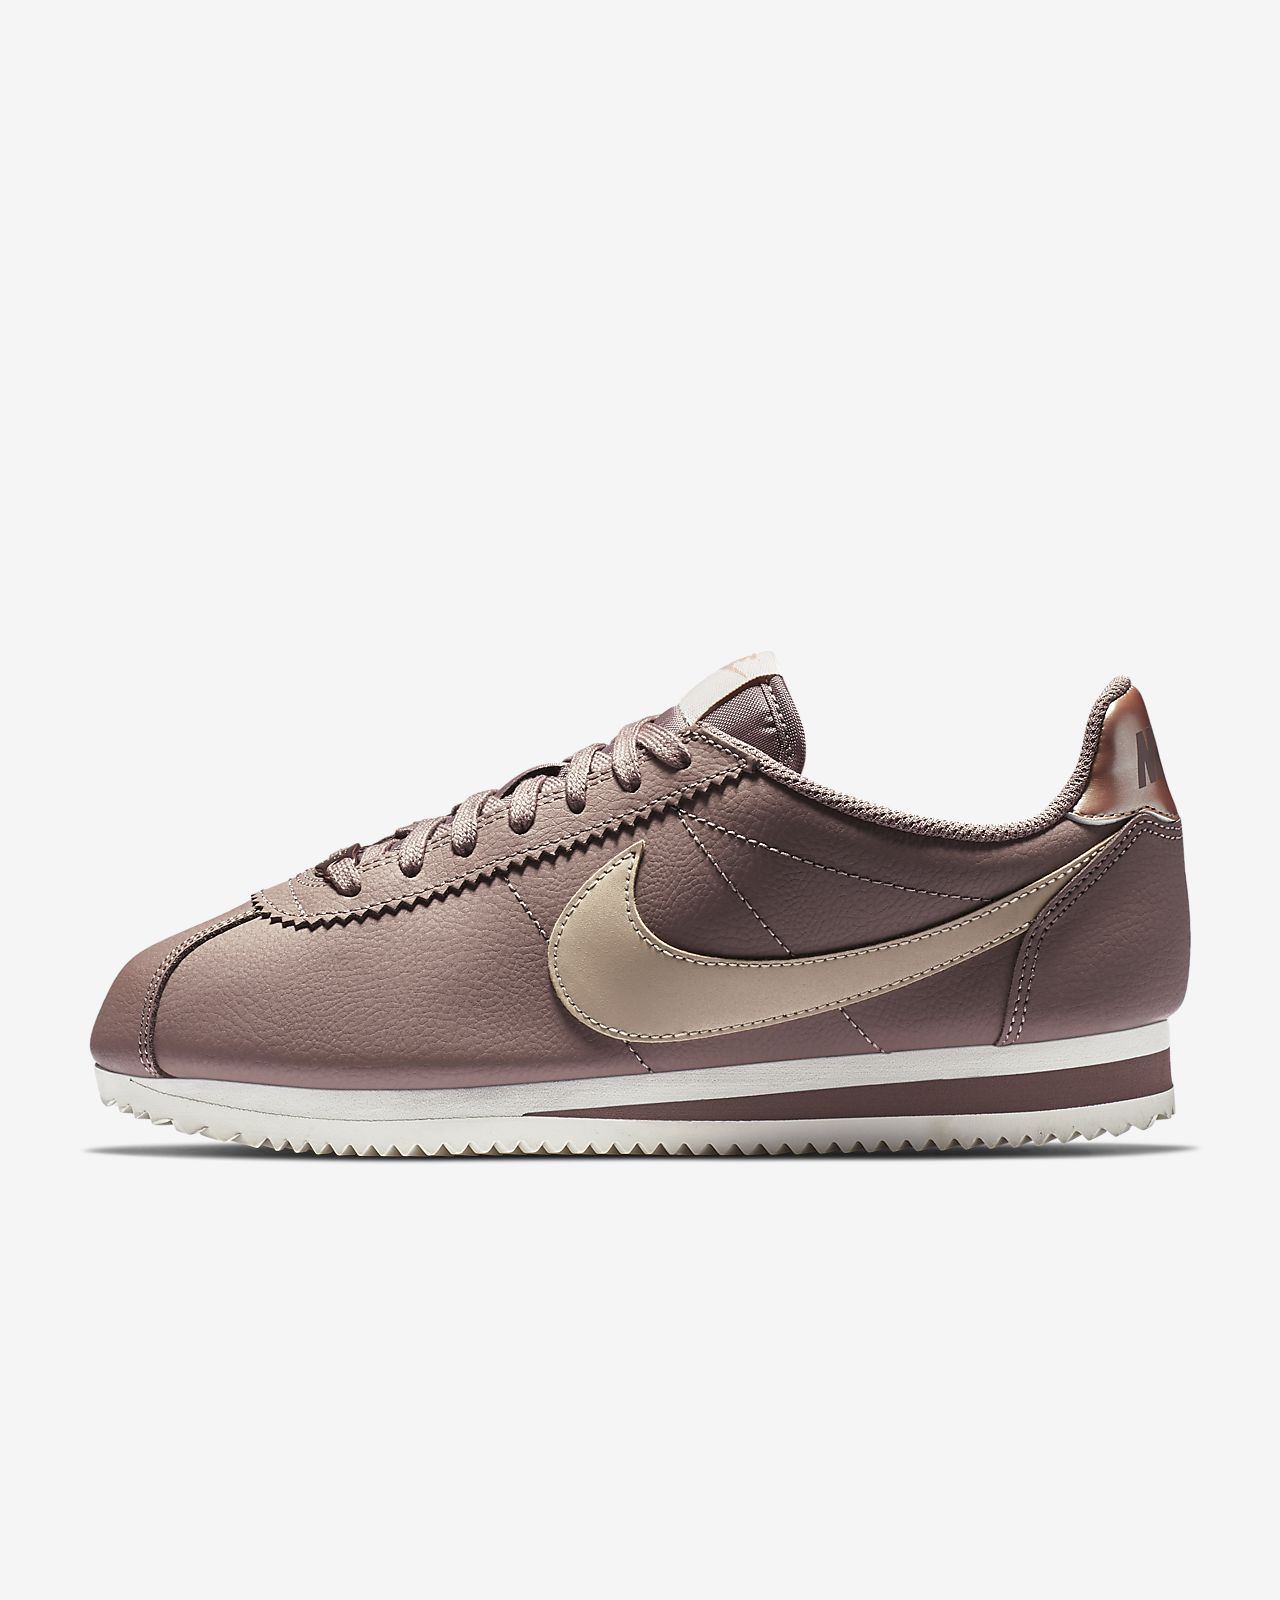 91197057d2e Nike Classic Cortez Leather Women s Shoe. Nike.com ID